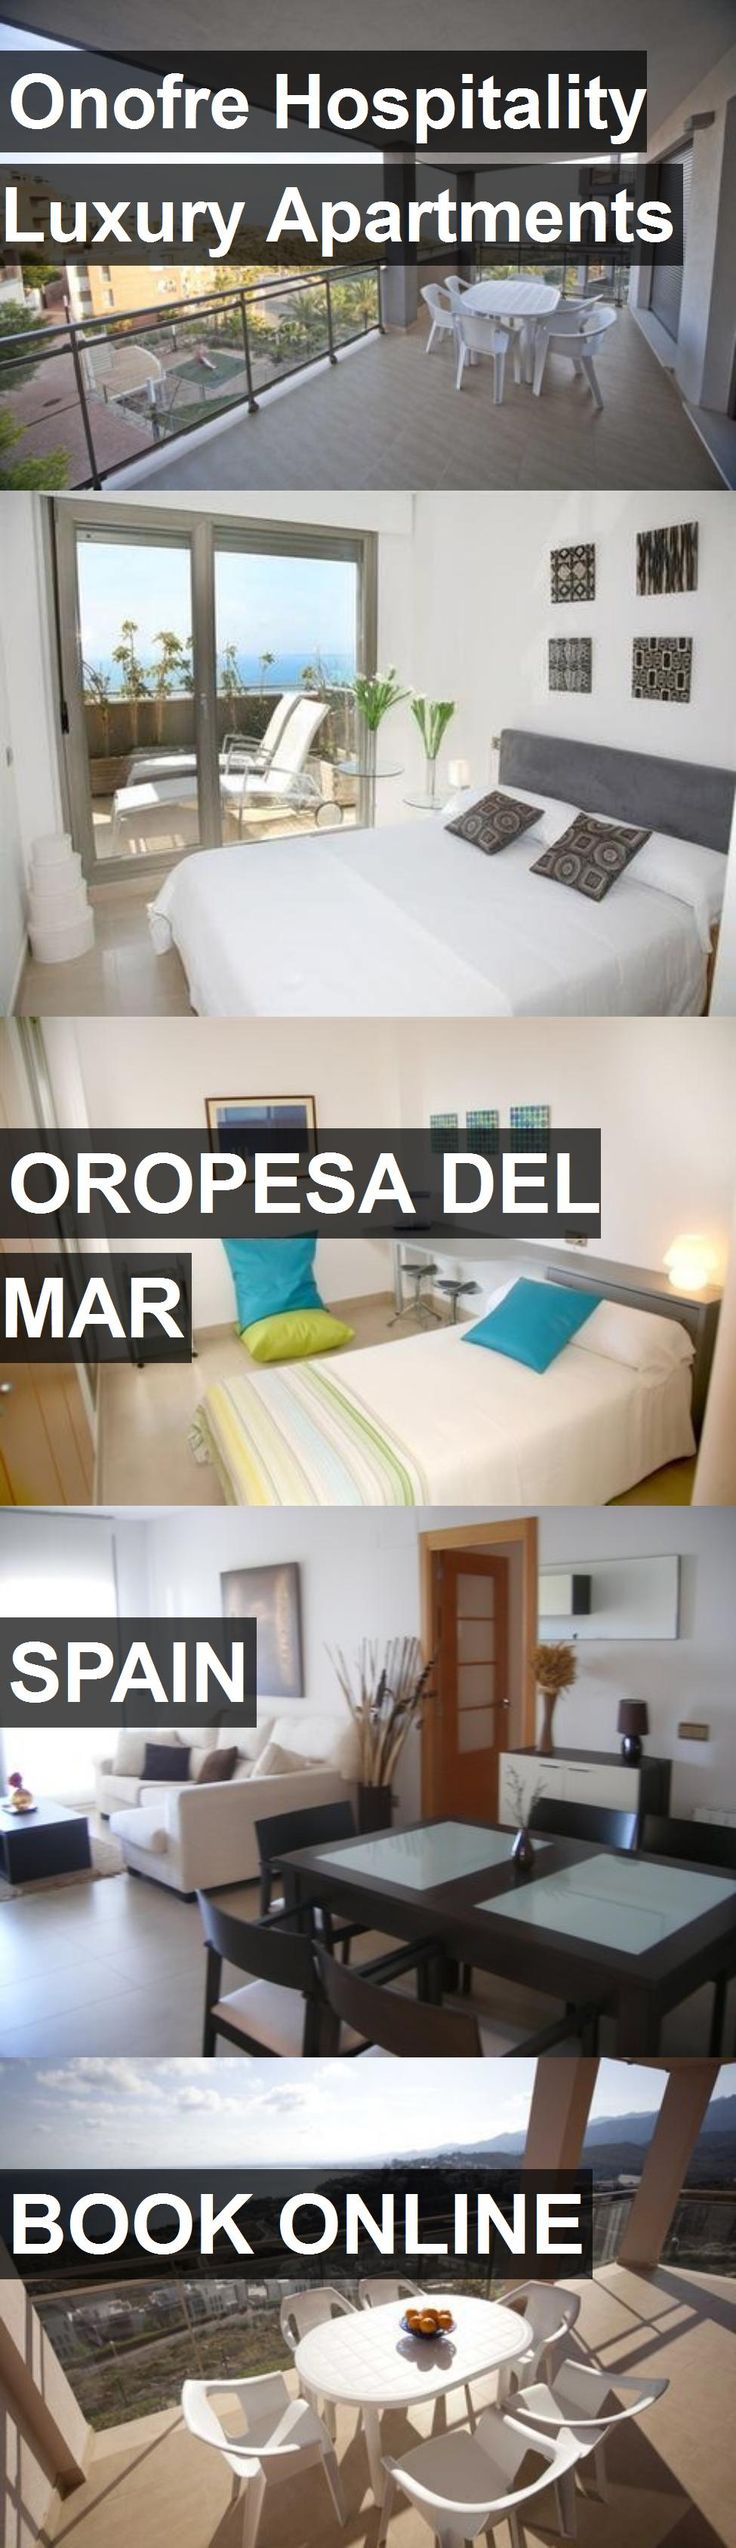 Onofre Hospitality Luxury Apartments in Oropesa del Mar, Spain. For more information, photos, reviews and best prices please follow the link. #Spain #OropesadelMar #travel #vacation #apartment